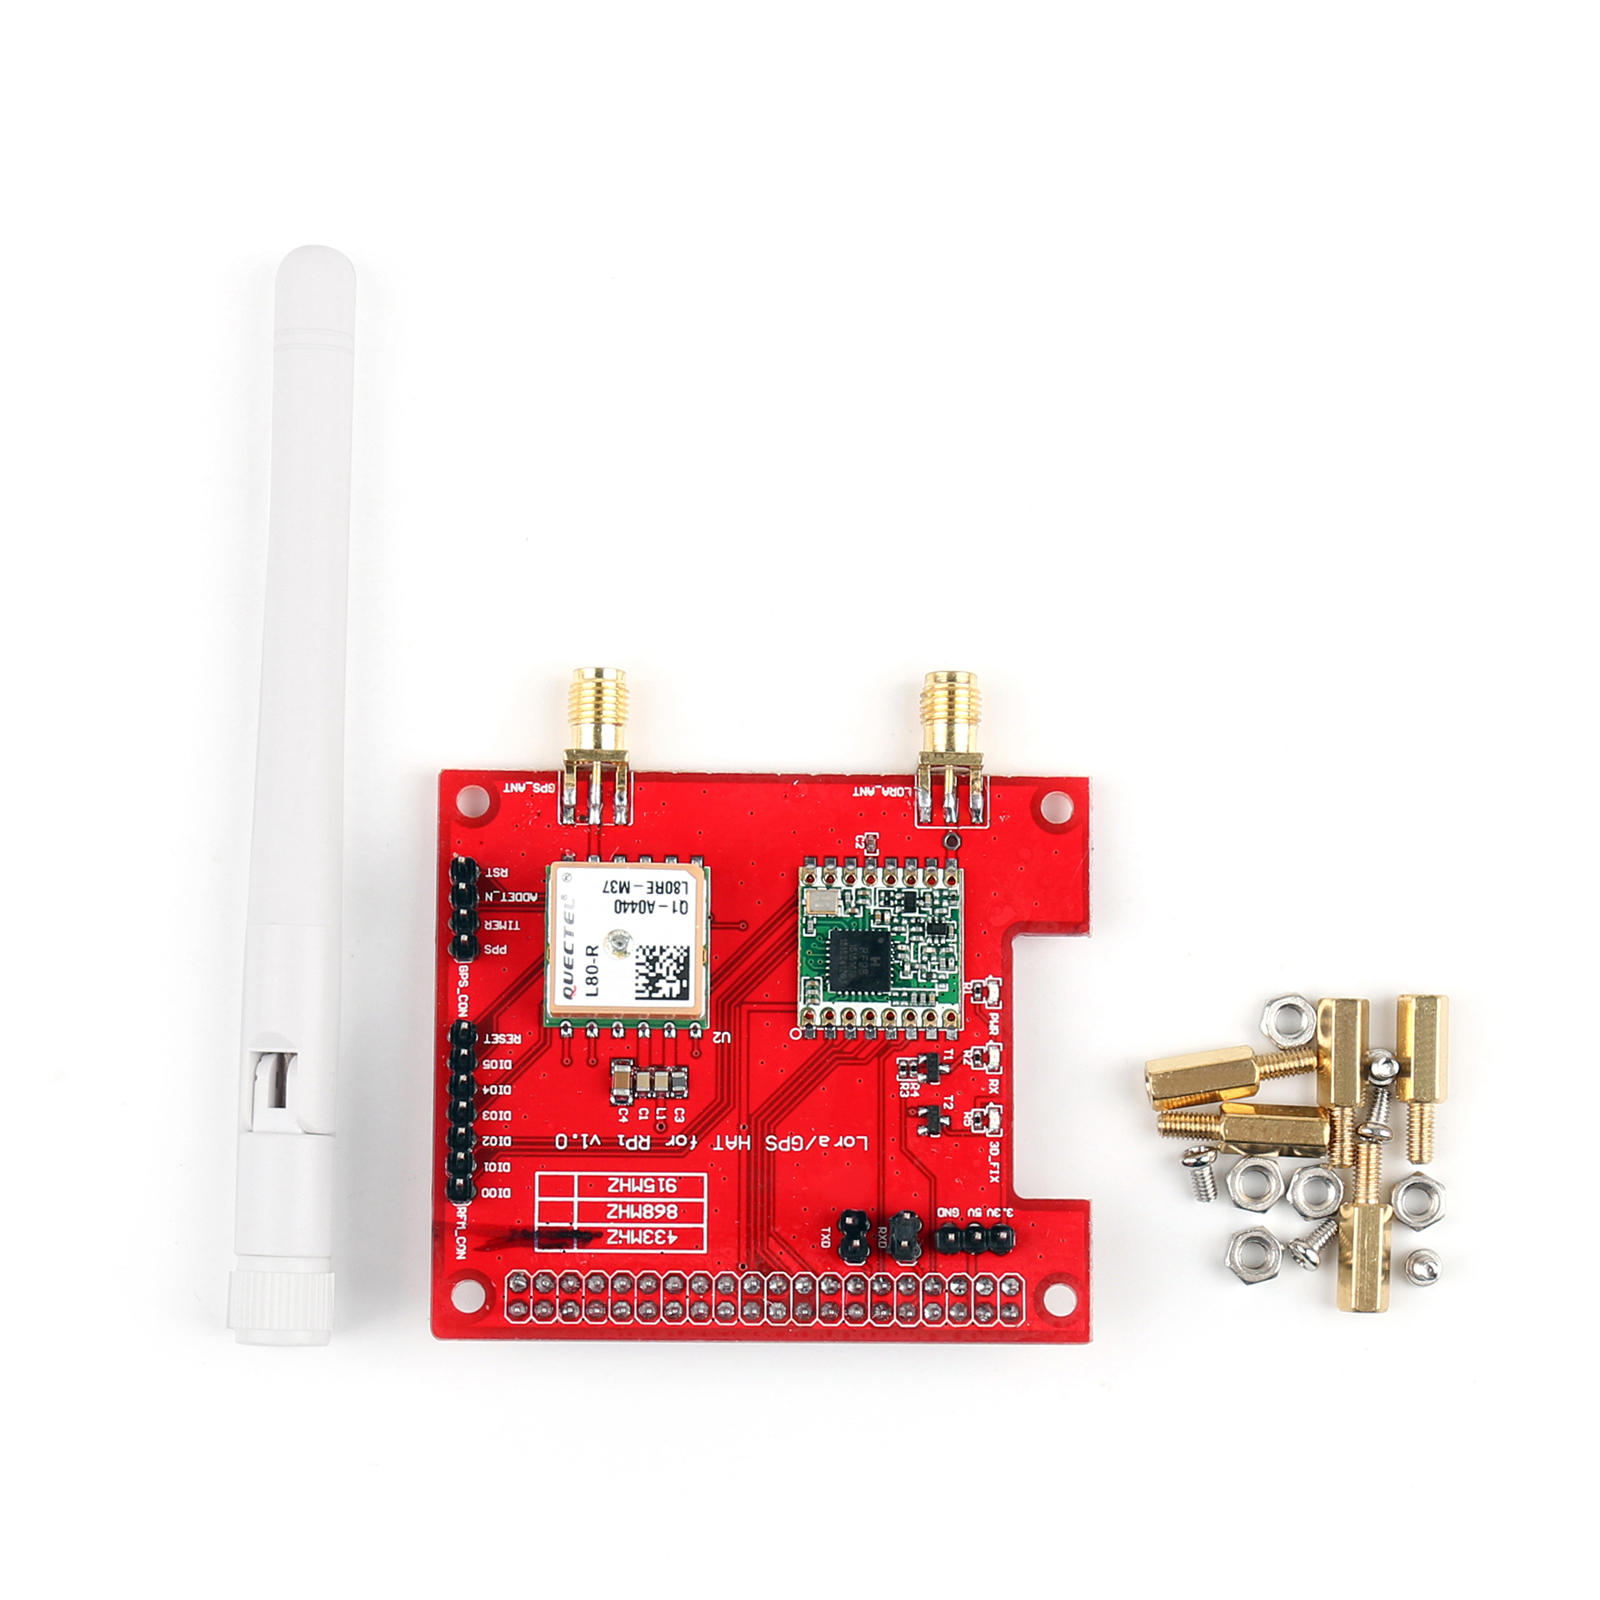 Details about Long Distance Wireless 433/868/915 Mhz Lora/GPS Expansion  Board For Raspberry Pi